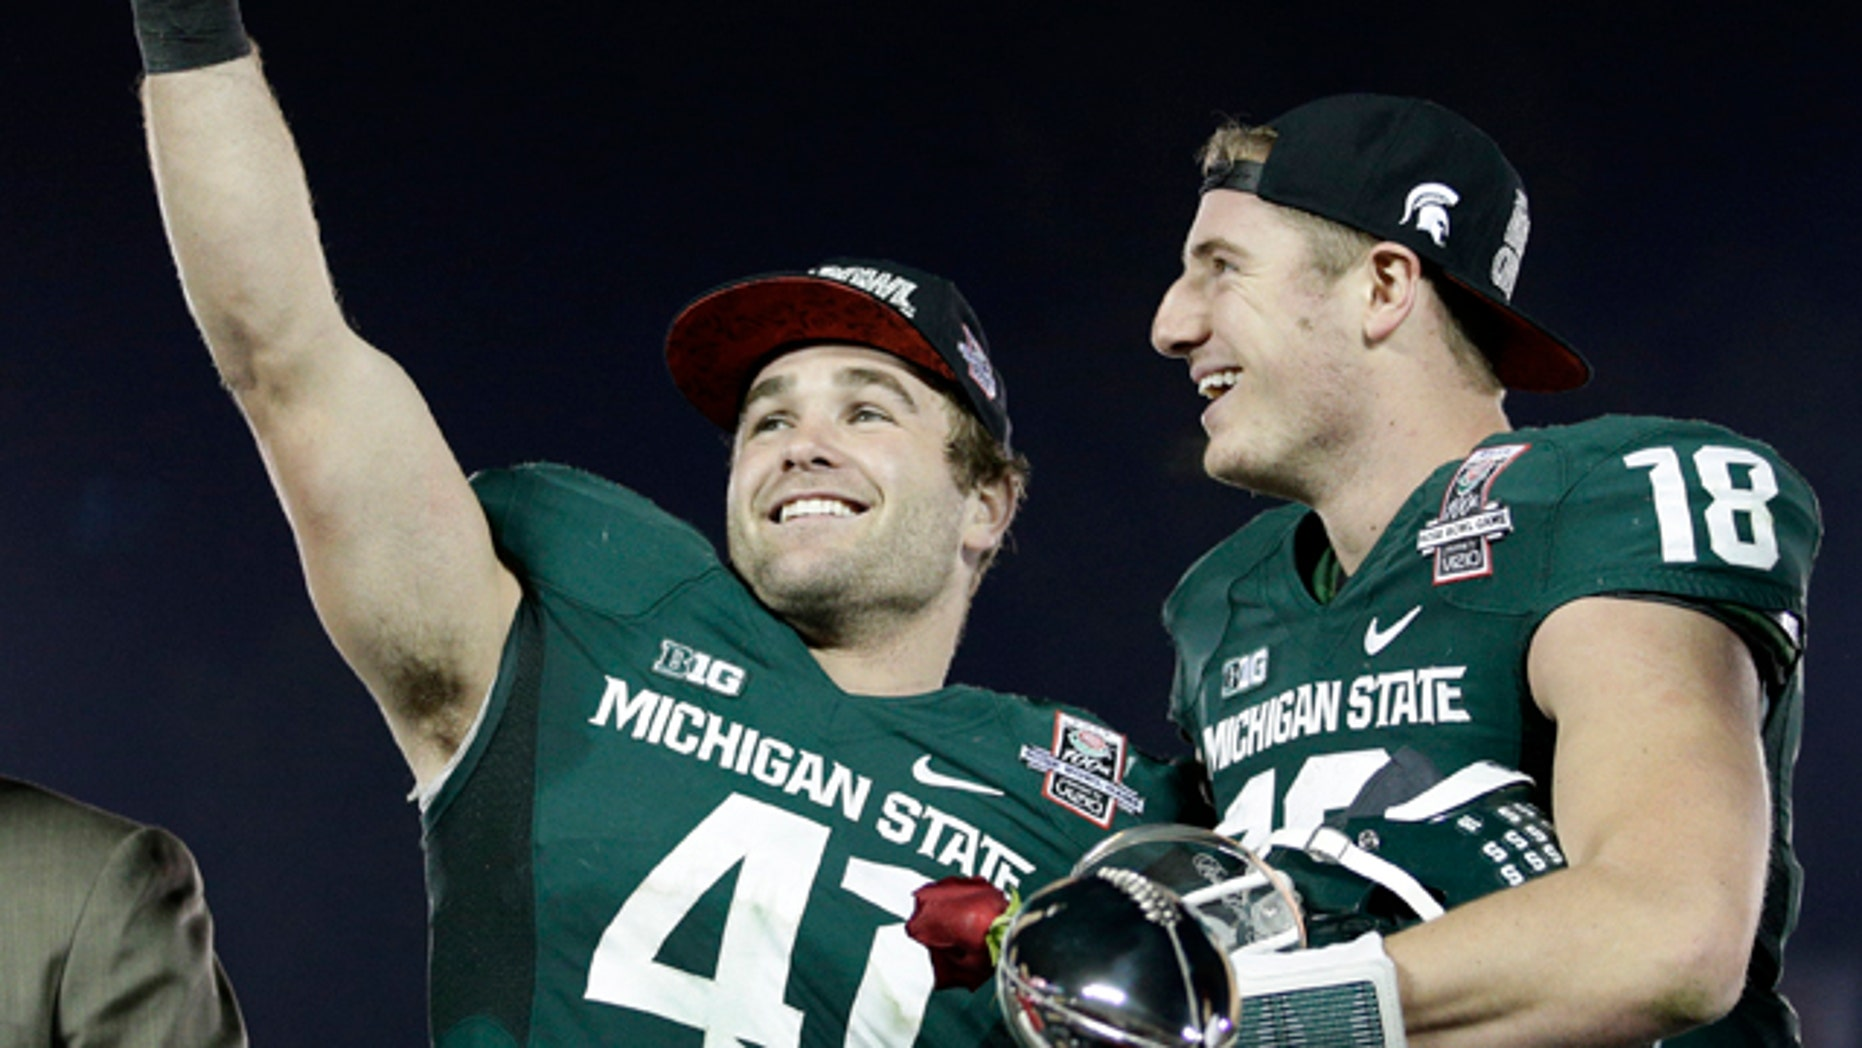 Jan. 1, 2014: Michigan State linebacker Kyler Elsworth, left, celebrates with quarterback Connor Cook after Michigan State defeated Stanford 24-20 in the Rose Bowl NCAA college football game.